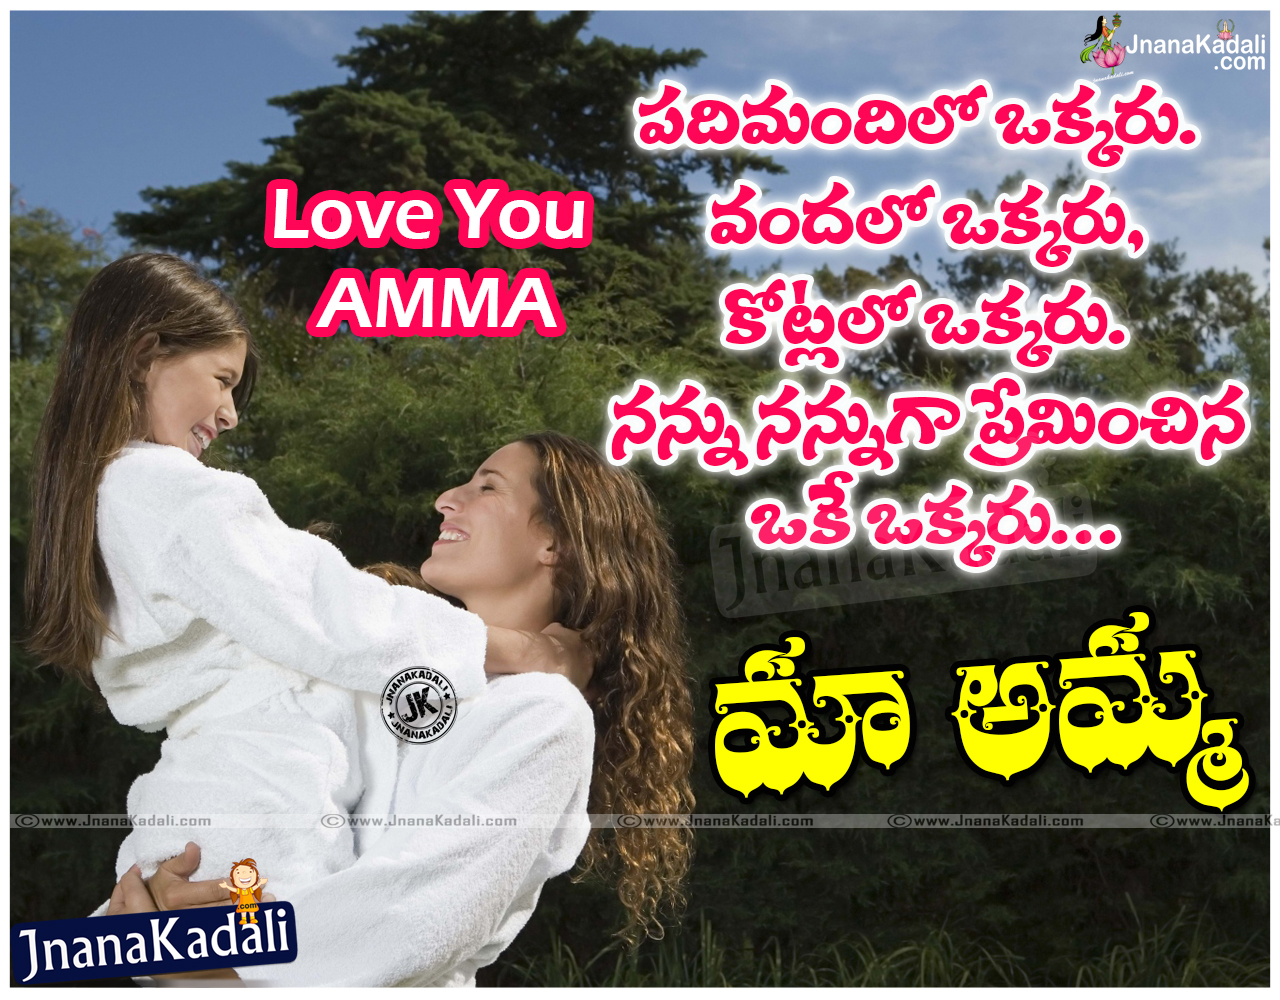 Tremendous Best Telugu Inspiring Words For Mother Amma Telugu Kavithalu Personalised Birthday Cards Veneteletsinfo